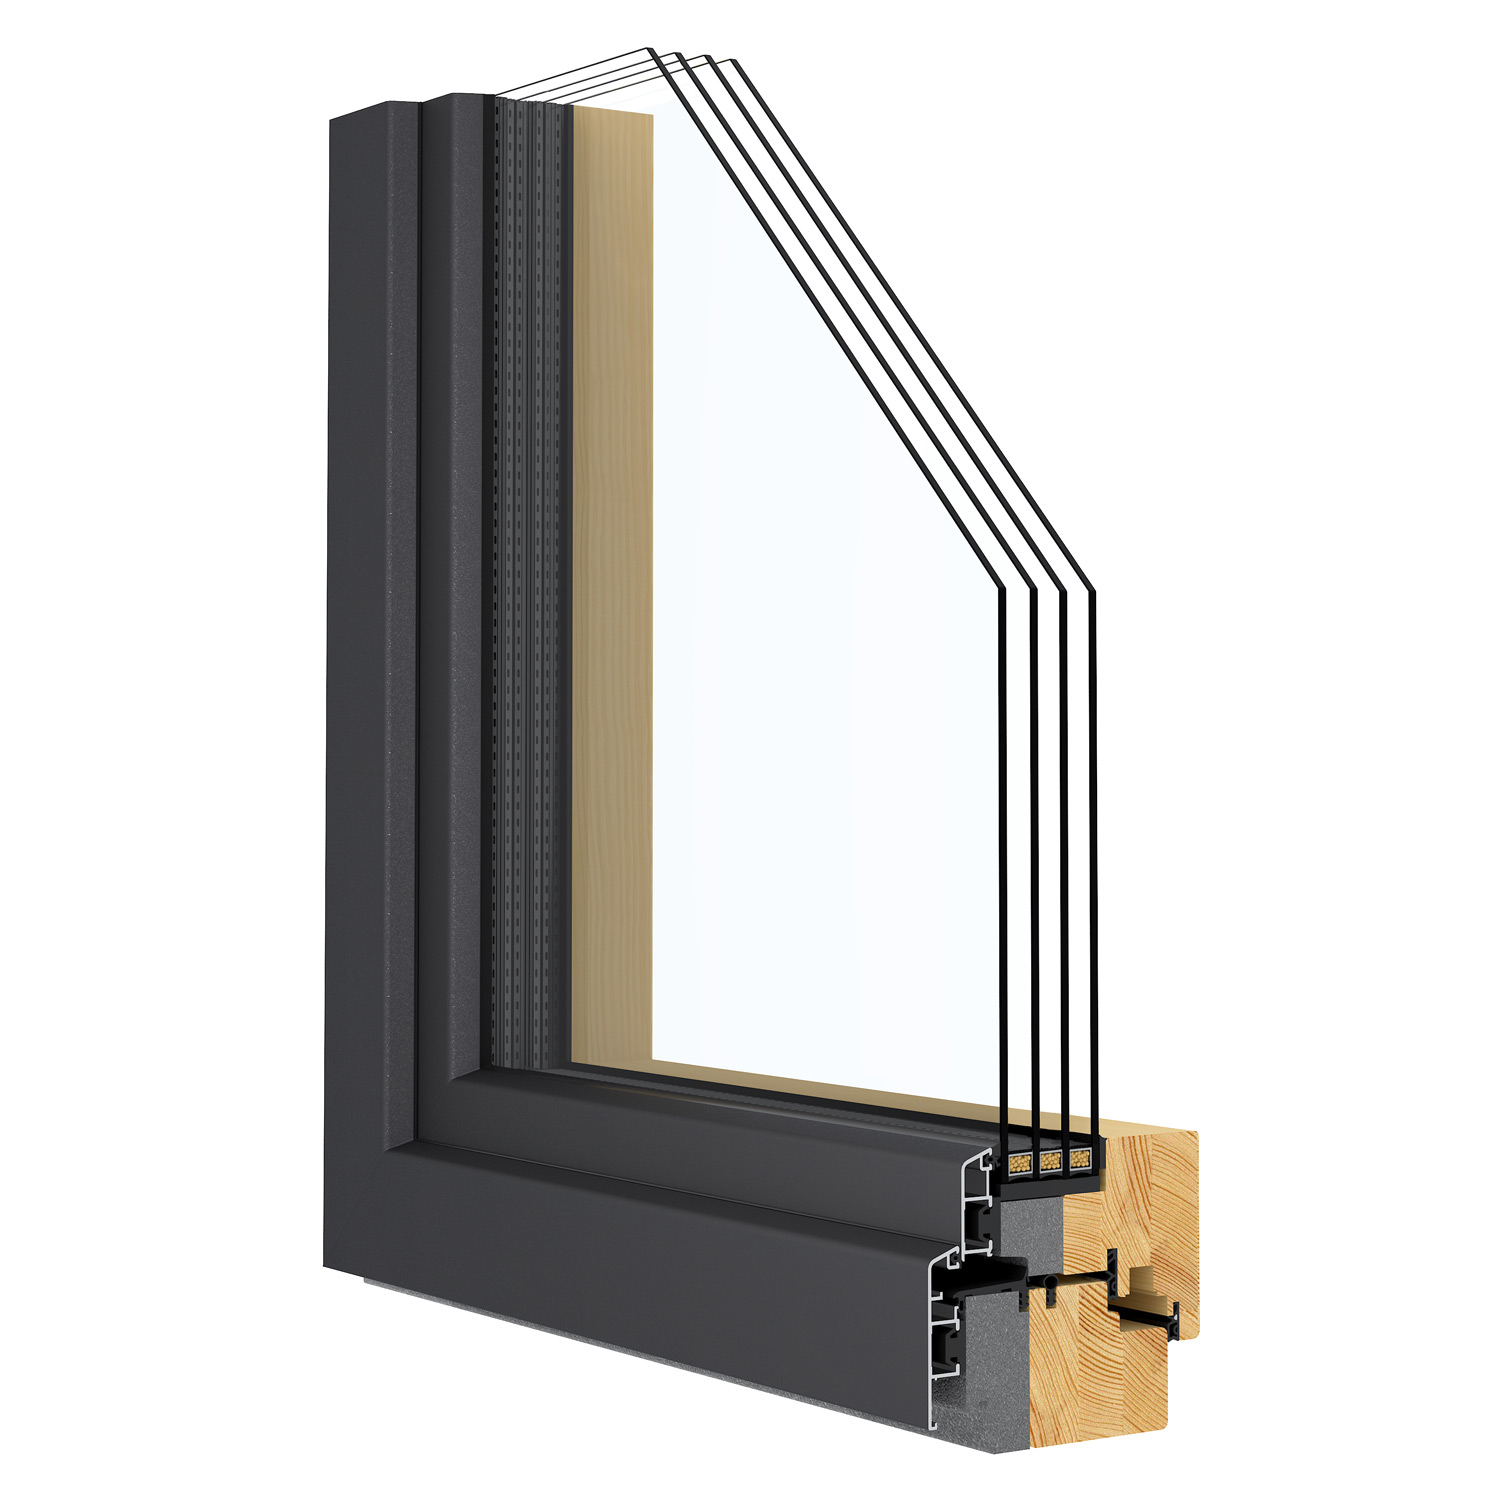 R-11 Zola Arctic™ Passive House window rendering